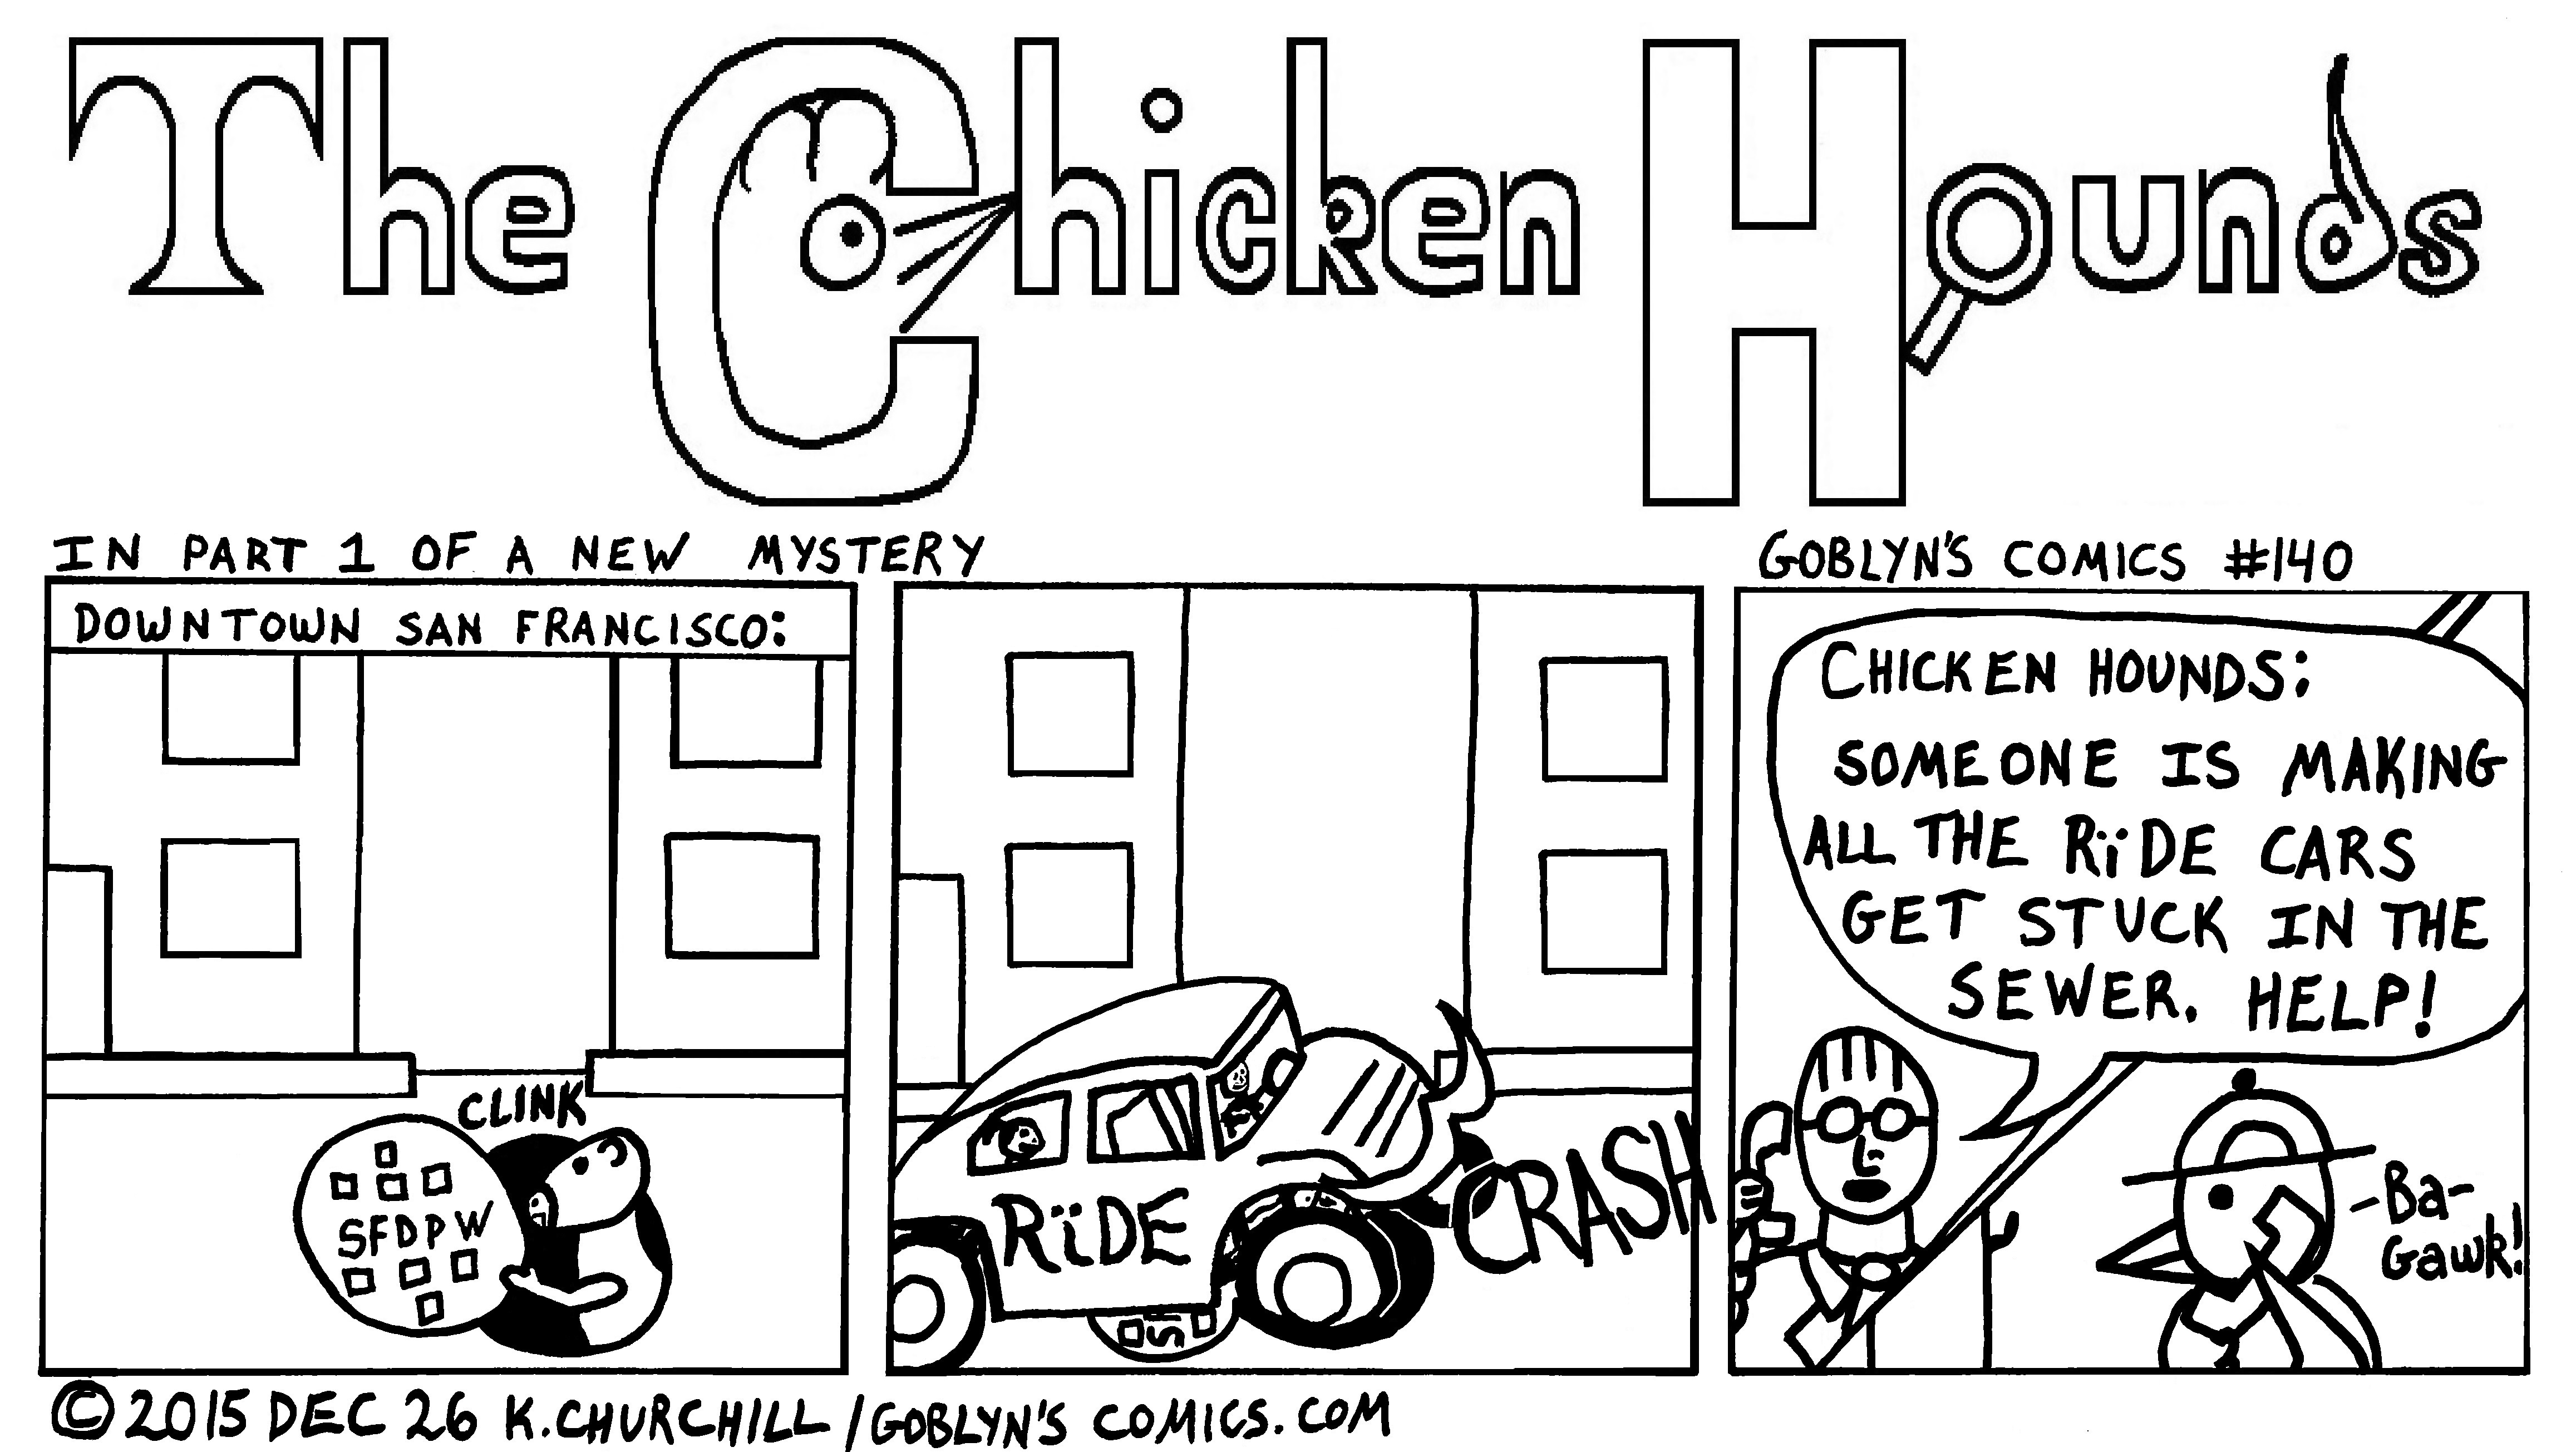 The Chicken Hounds in a new Mystery